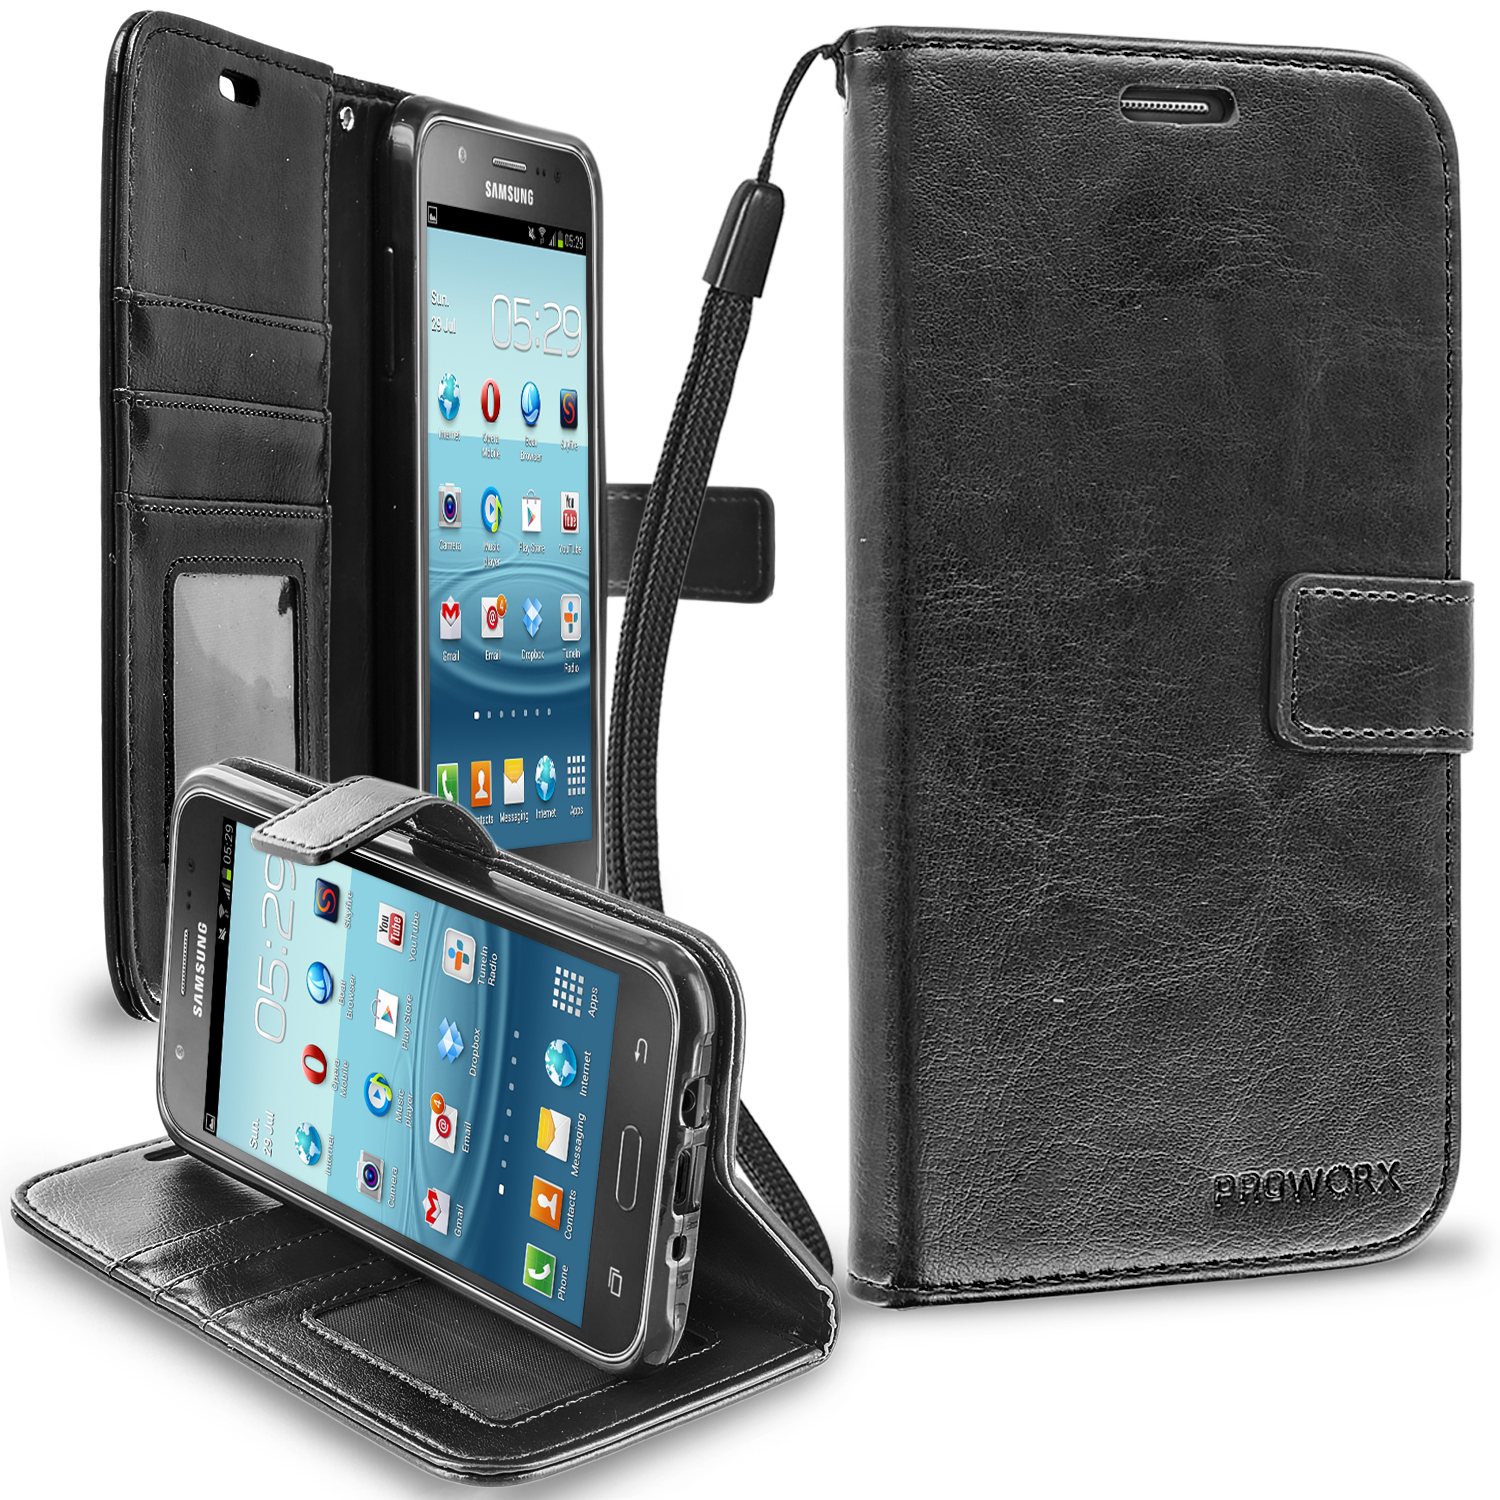 Samsung Galaxy J7 Black ProWorx Wallet Case Luxury PU Leather Case Cover With Card Slots & Stand